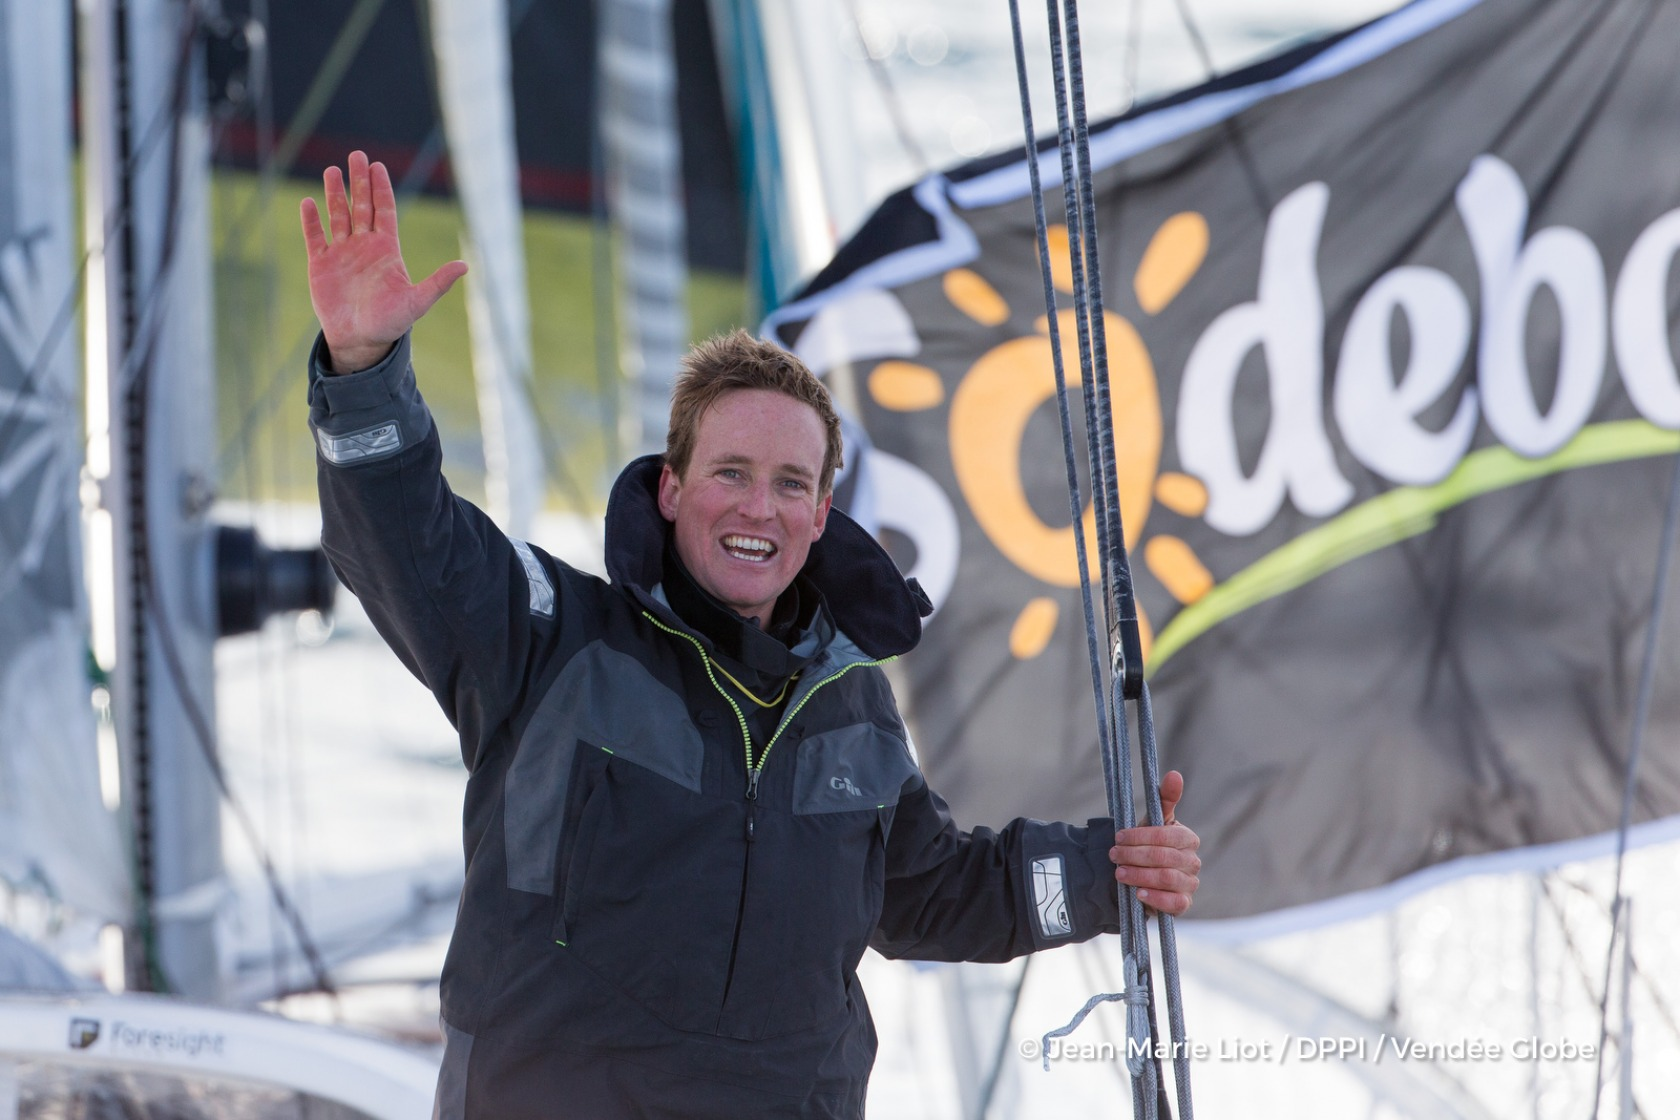 Conrad Colman (NZL), skipper Foresight Natural Energy, at start of the Vendee Globe, in Les Sables d'Olonne, France, on November 6th, 2016 - Photo Jean-Marie Liot / DPPI / Vendee GlobeConrad Colman (NZL), skipper Foresight Natural Energy, au départ du V